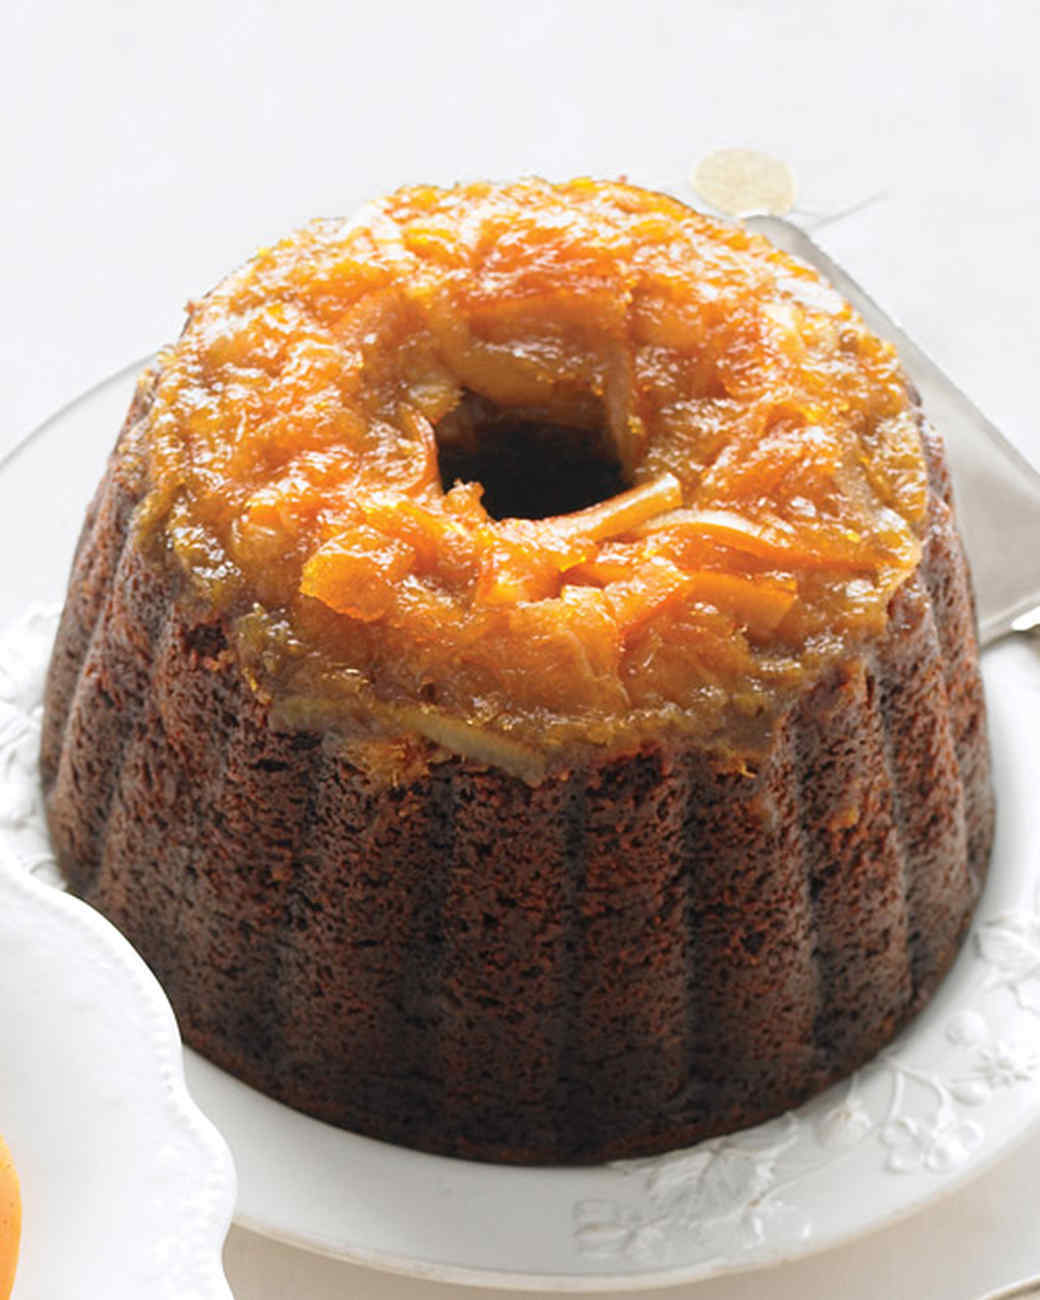 Steamed Chocolate-Gingerbread Pudding